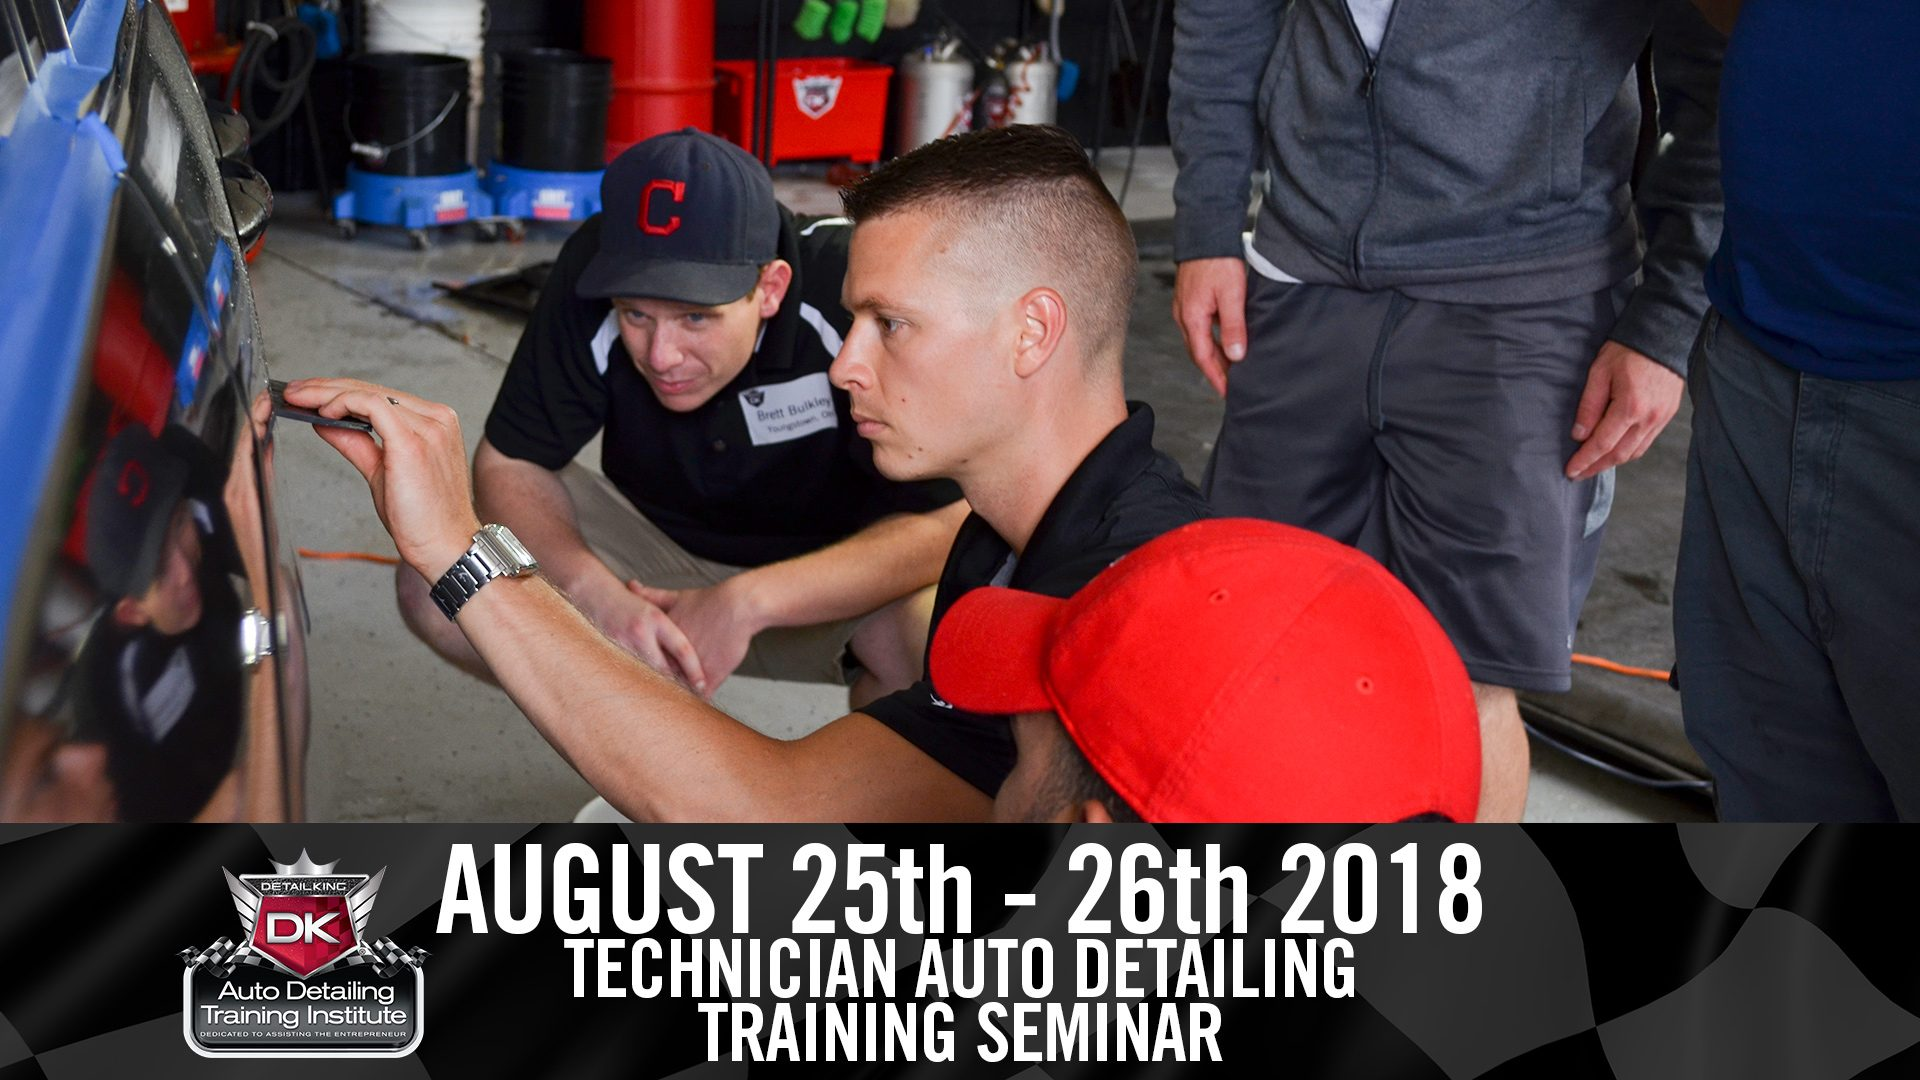 August 25th – 26th 2018 Technician Auto Detailing Training Seminar